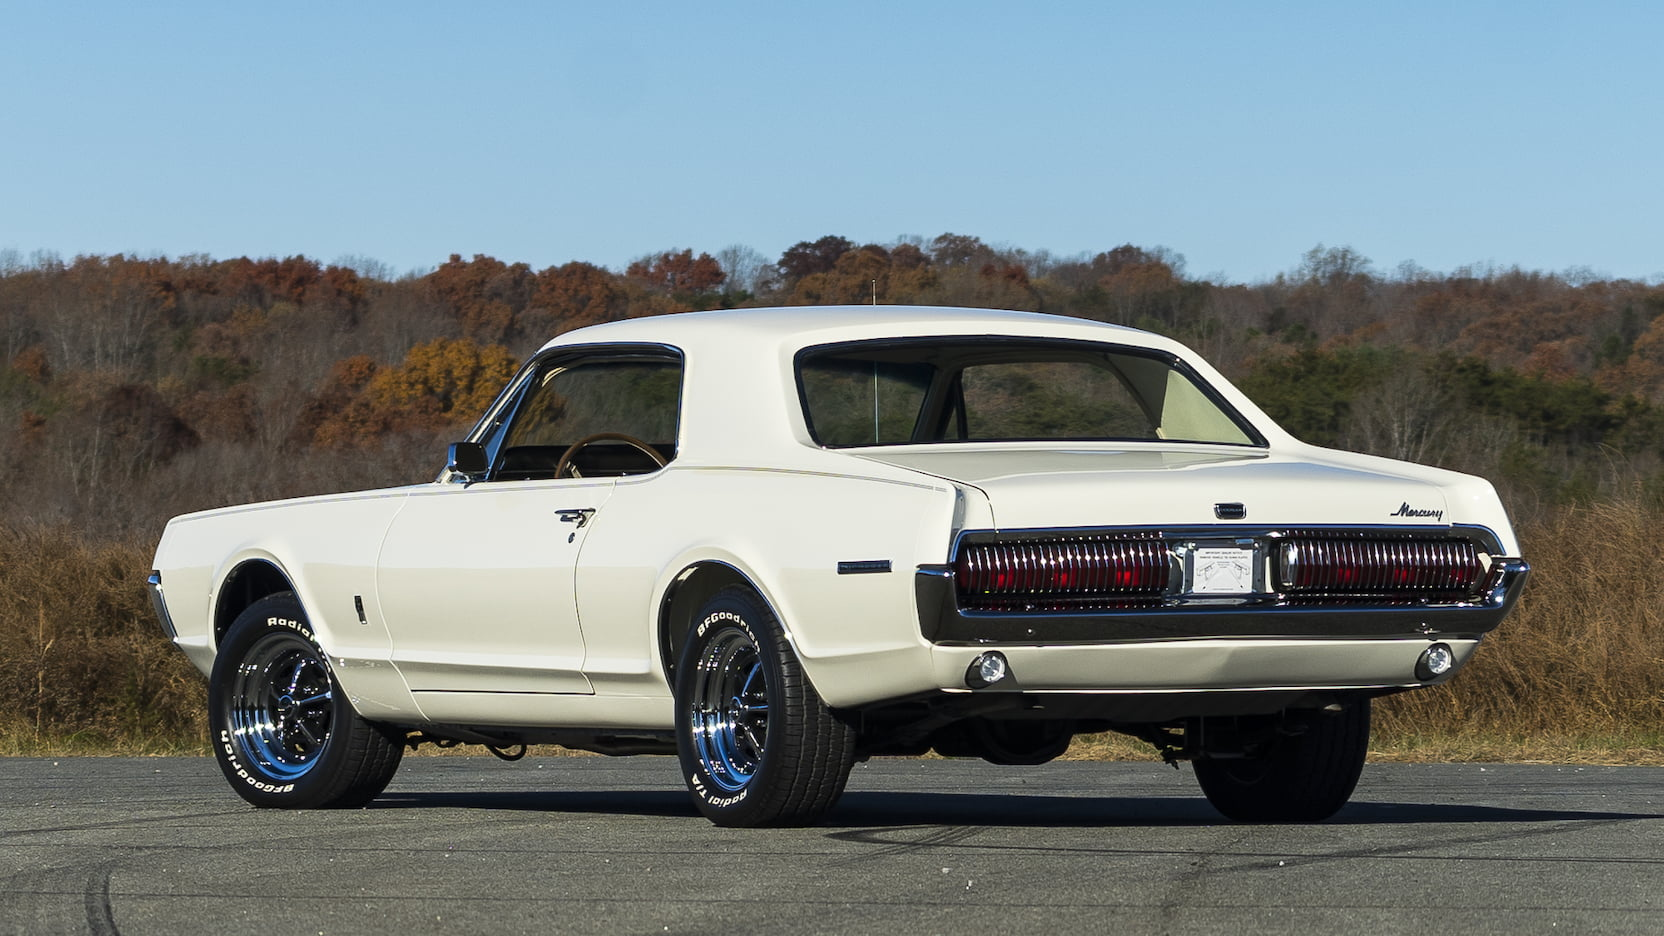 1967 Mercury Cougar 3/4 rear